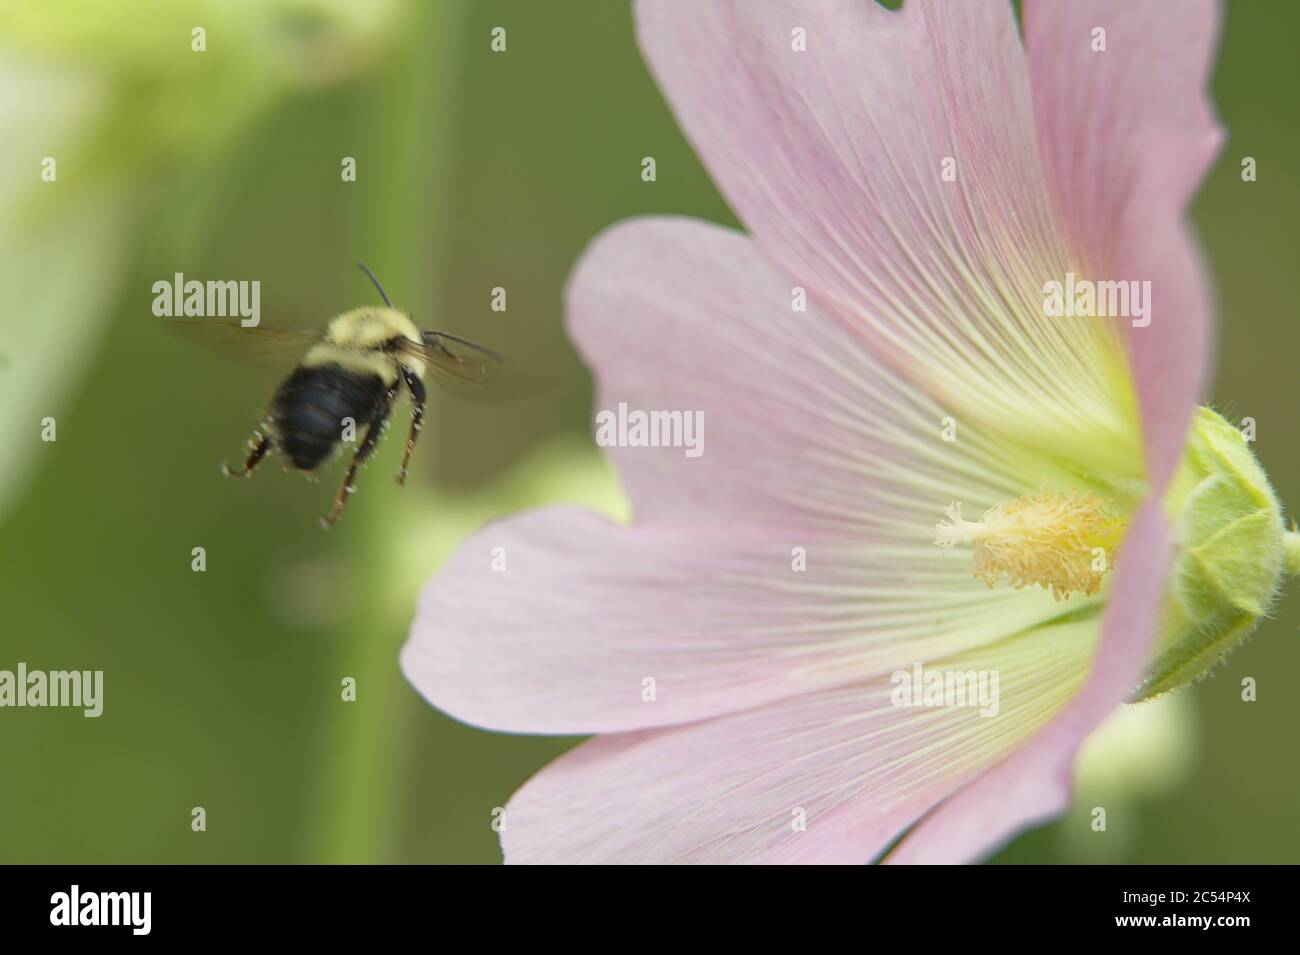 Macro of large light pink flower head with bumble bee in flight Stock Photo